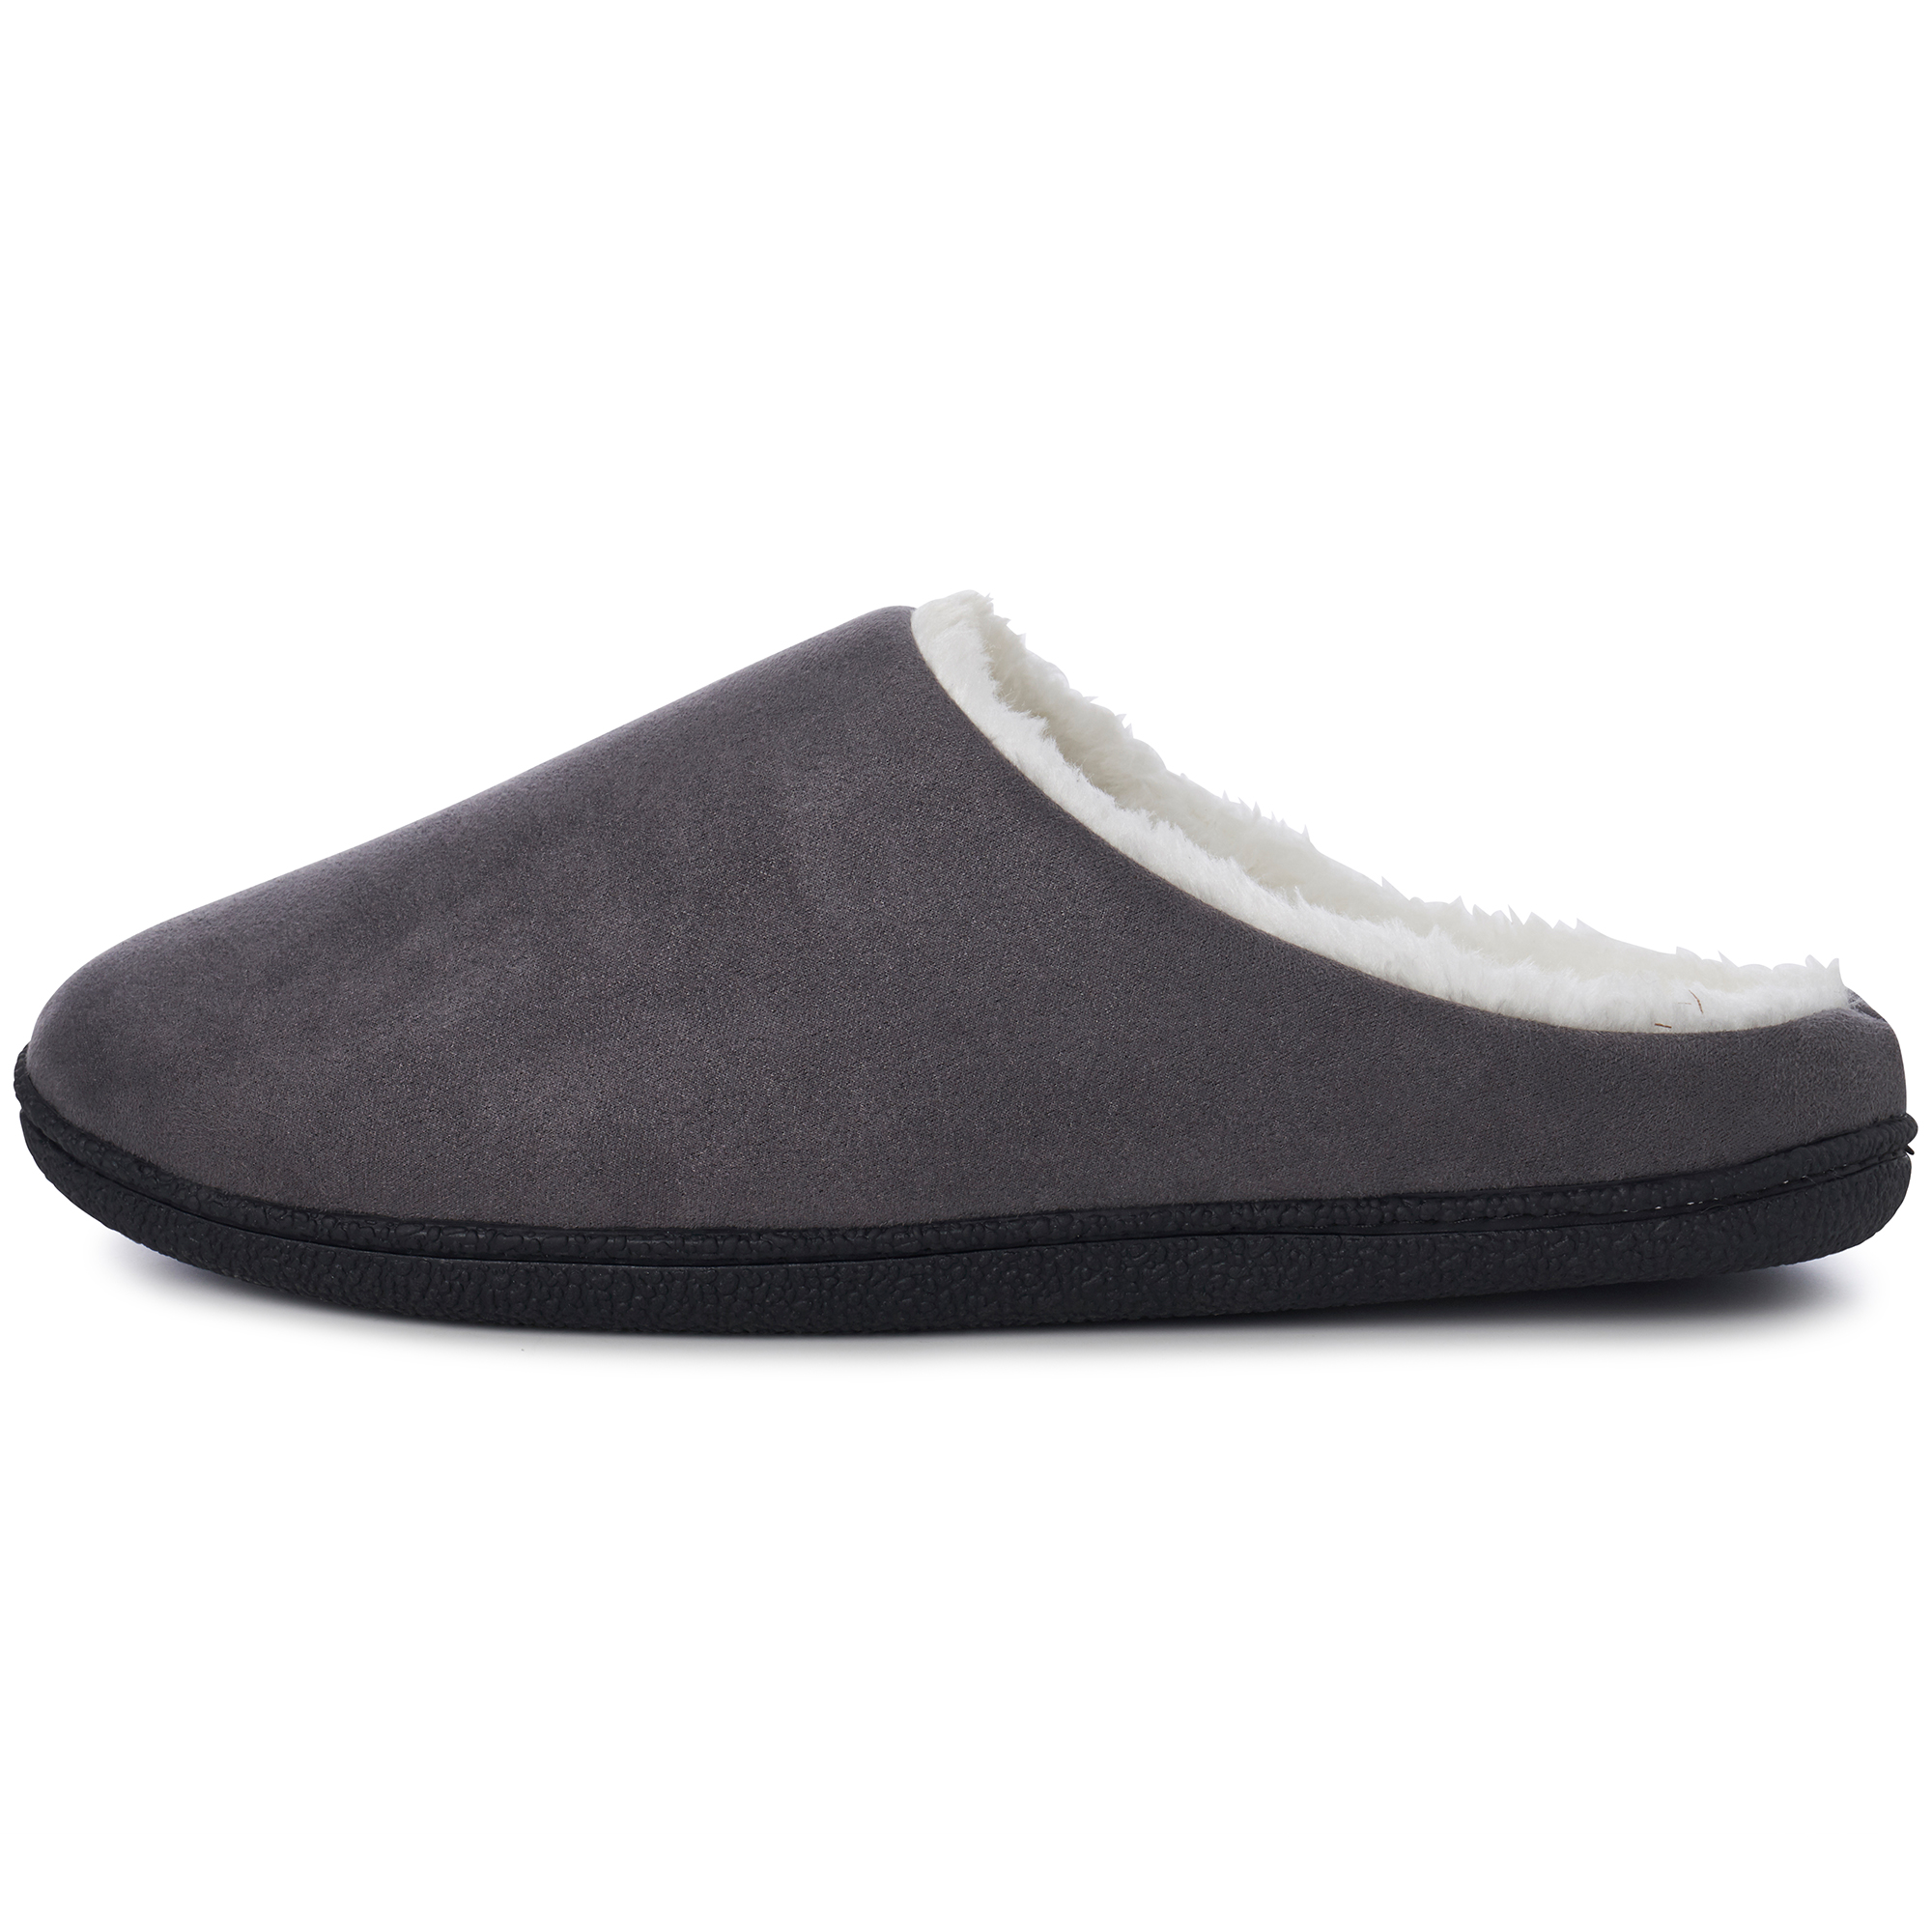 Alpine-Swiss-Mens-Memory-Foam-Clog-Slippers-Indoor-Comfort-Slip-On-House-Shoes thumbnail 25